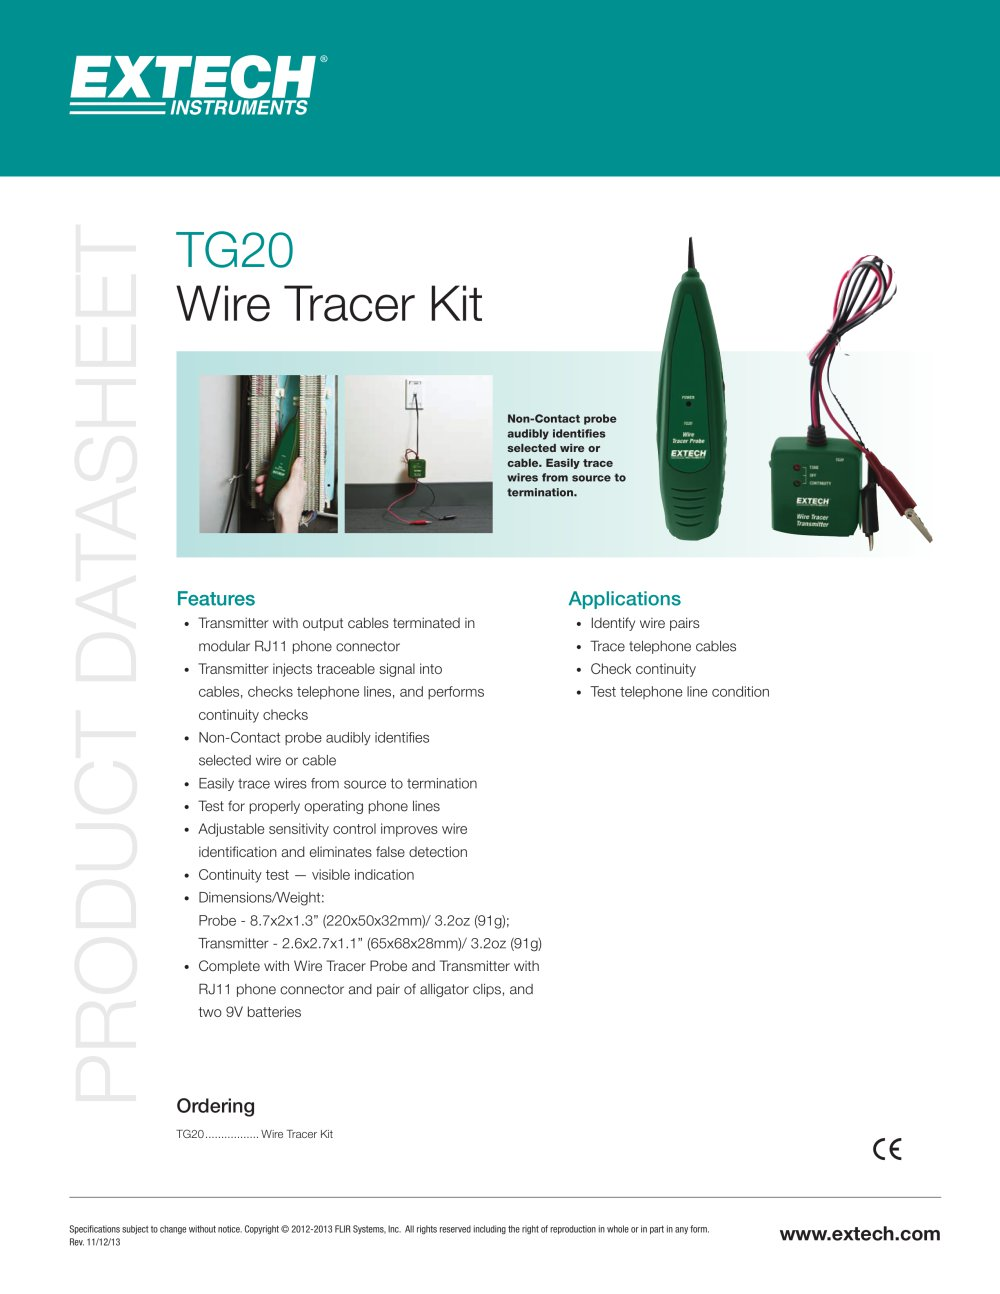 TG20: Wire Tracer Kit - Extech - PDF Catalogue | Technical ...